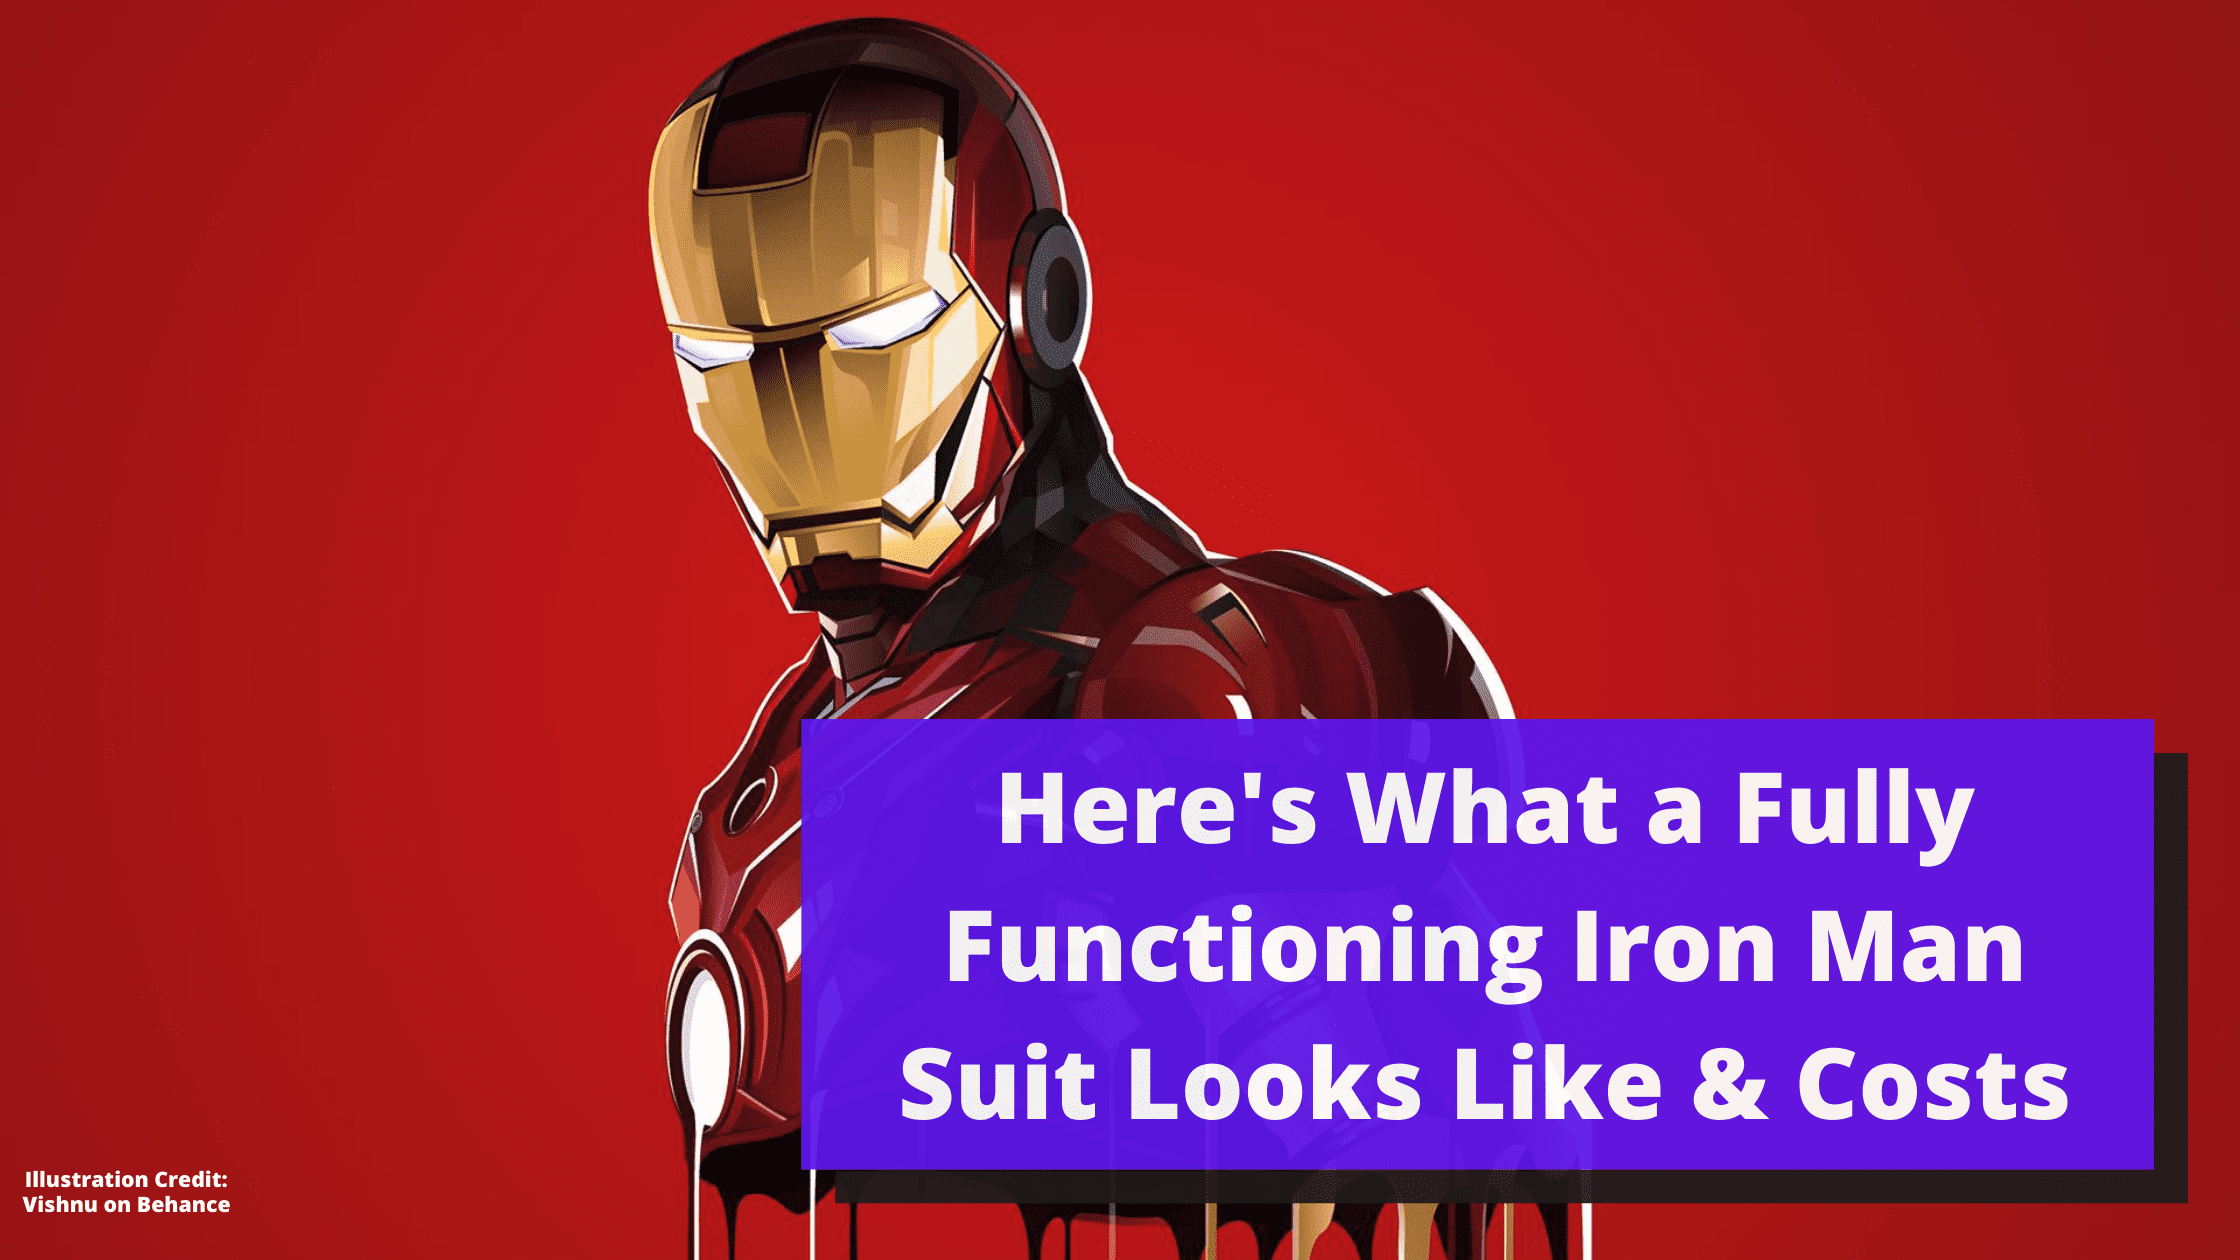 Here's What a Fully Functioning Iron Man Suit Looks Like & Costs